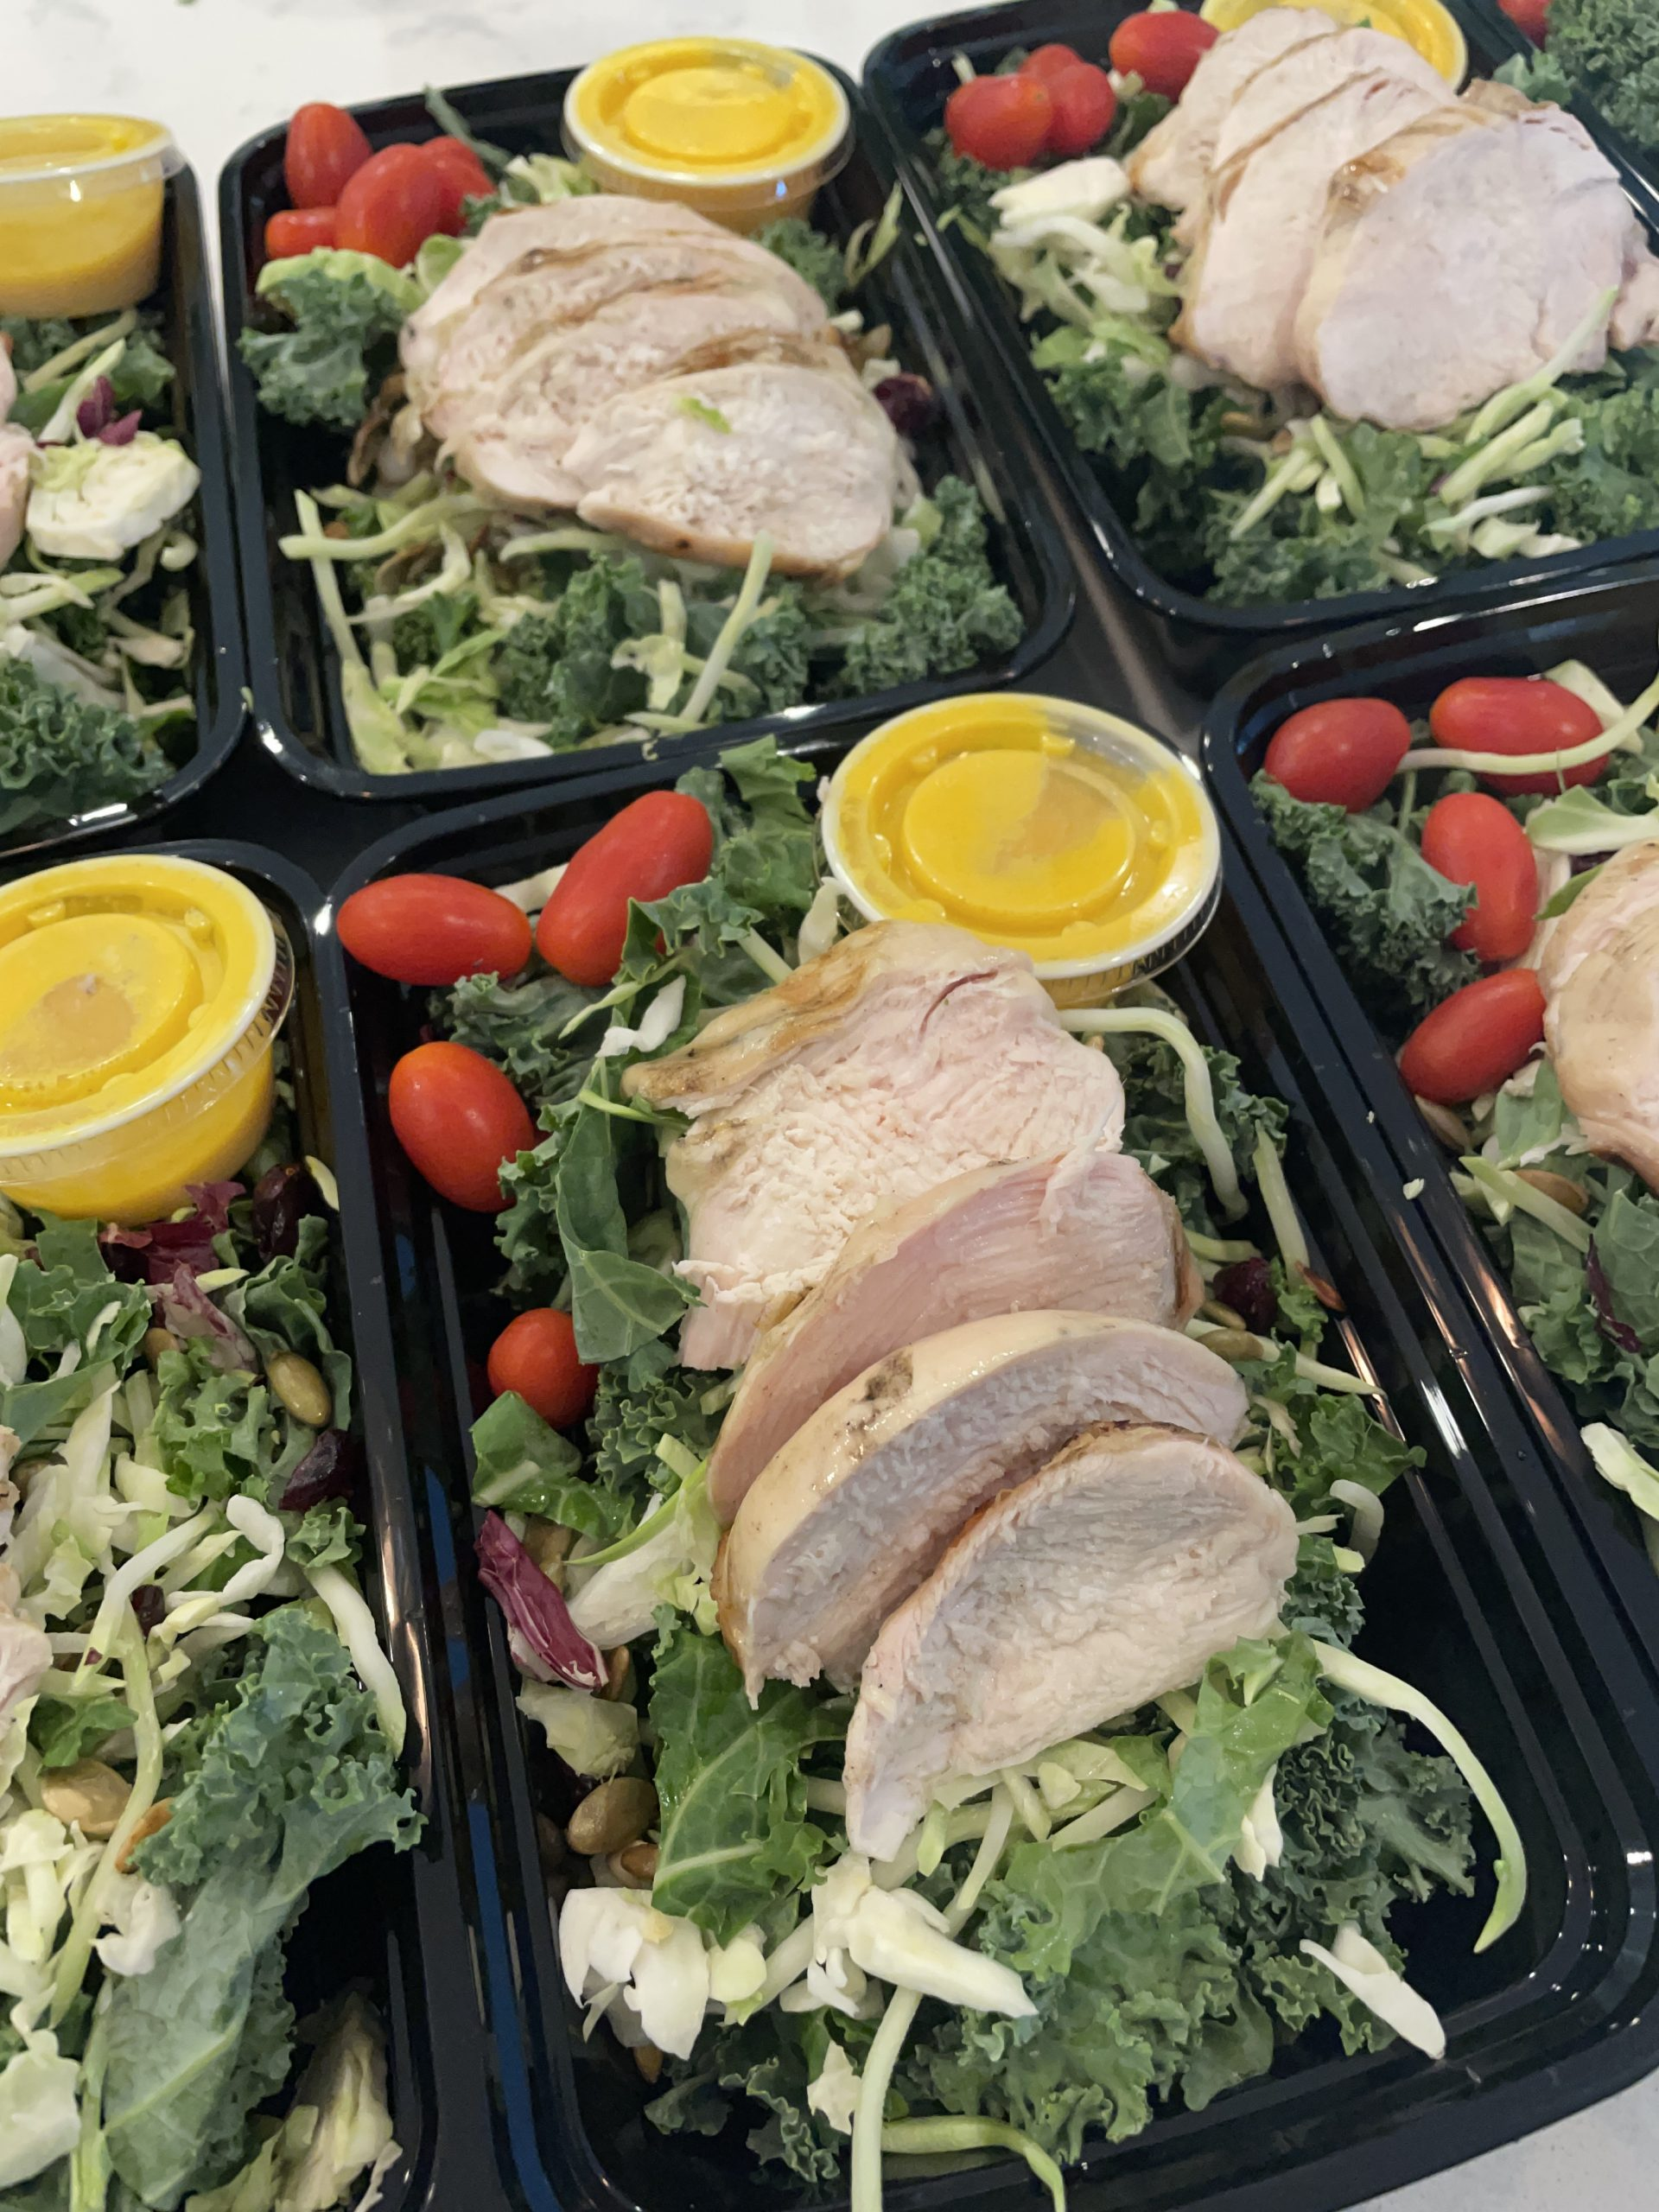 ITRUS KALE SALAD WITH BAKED CHICKEN RECIPE